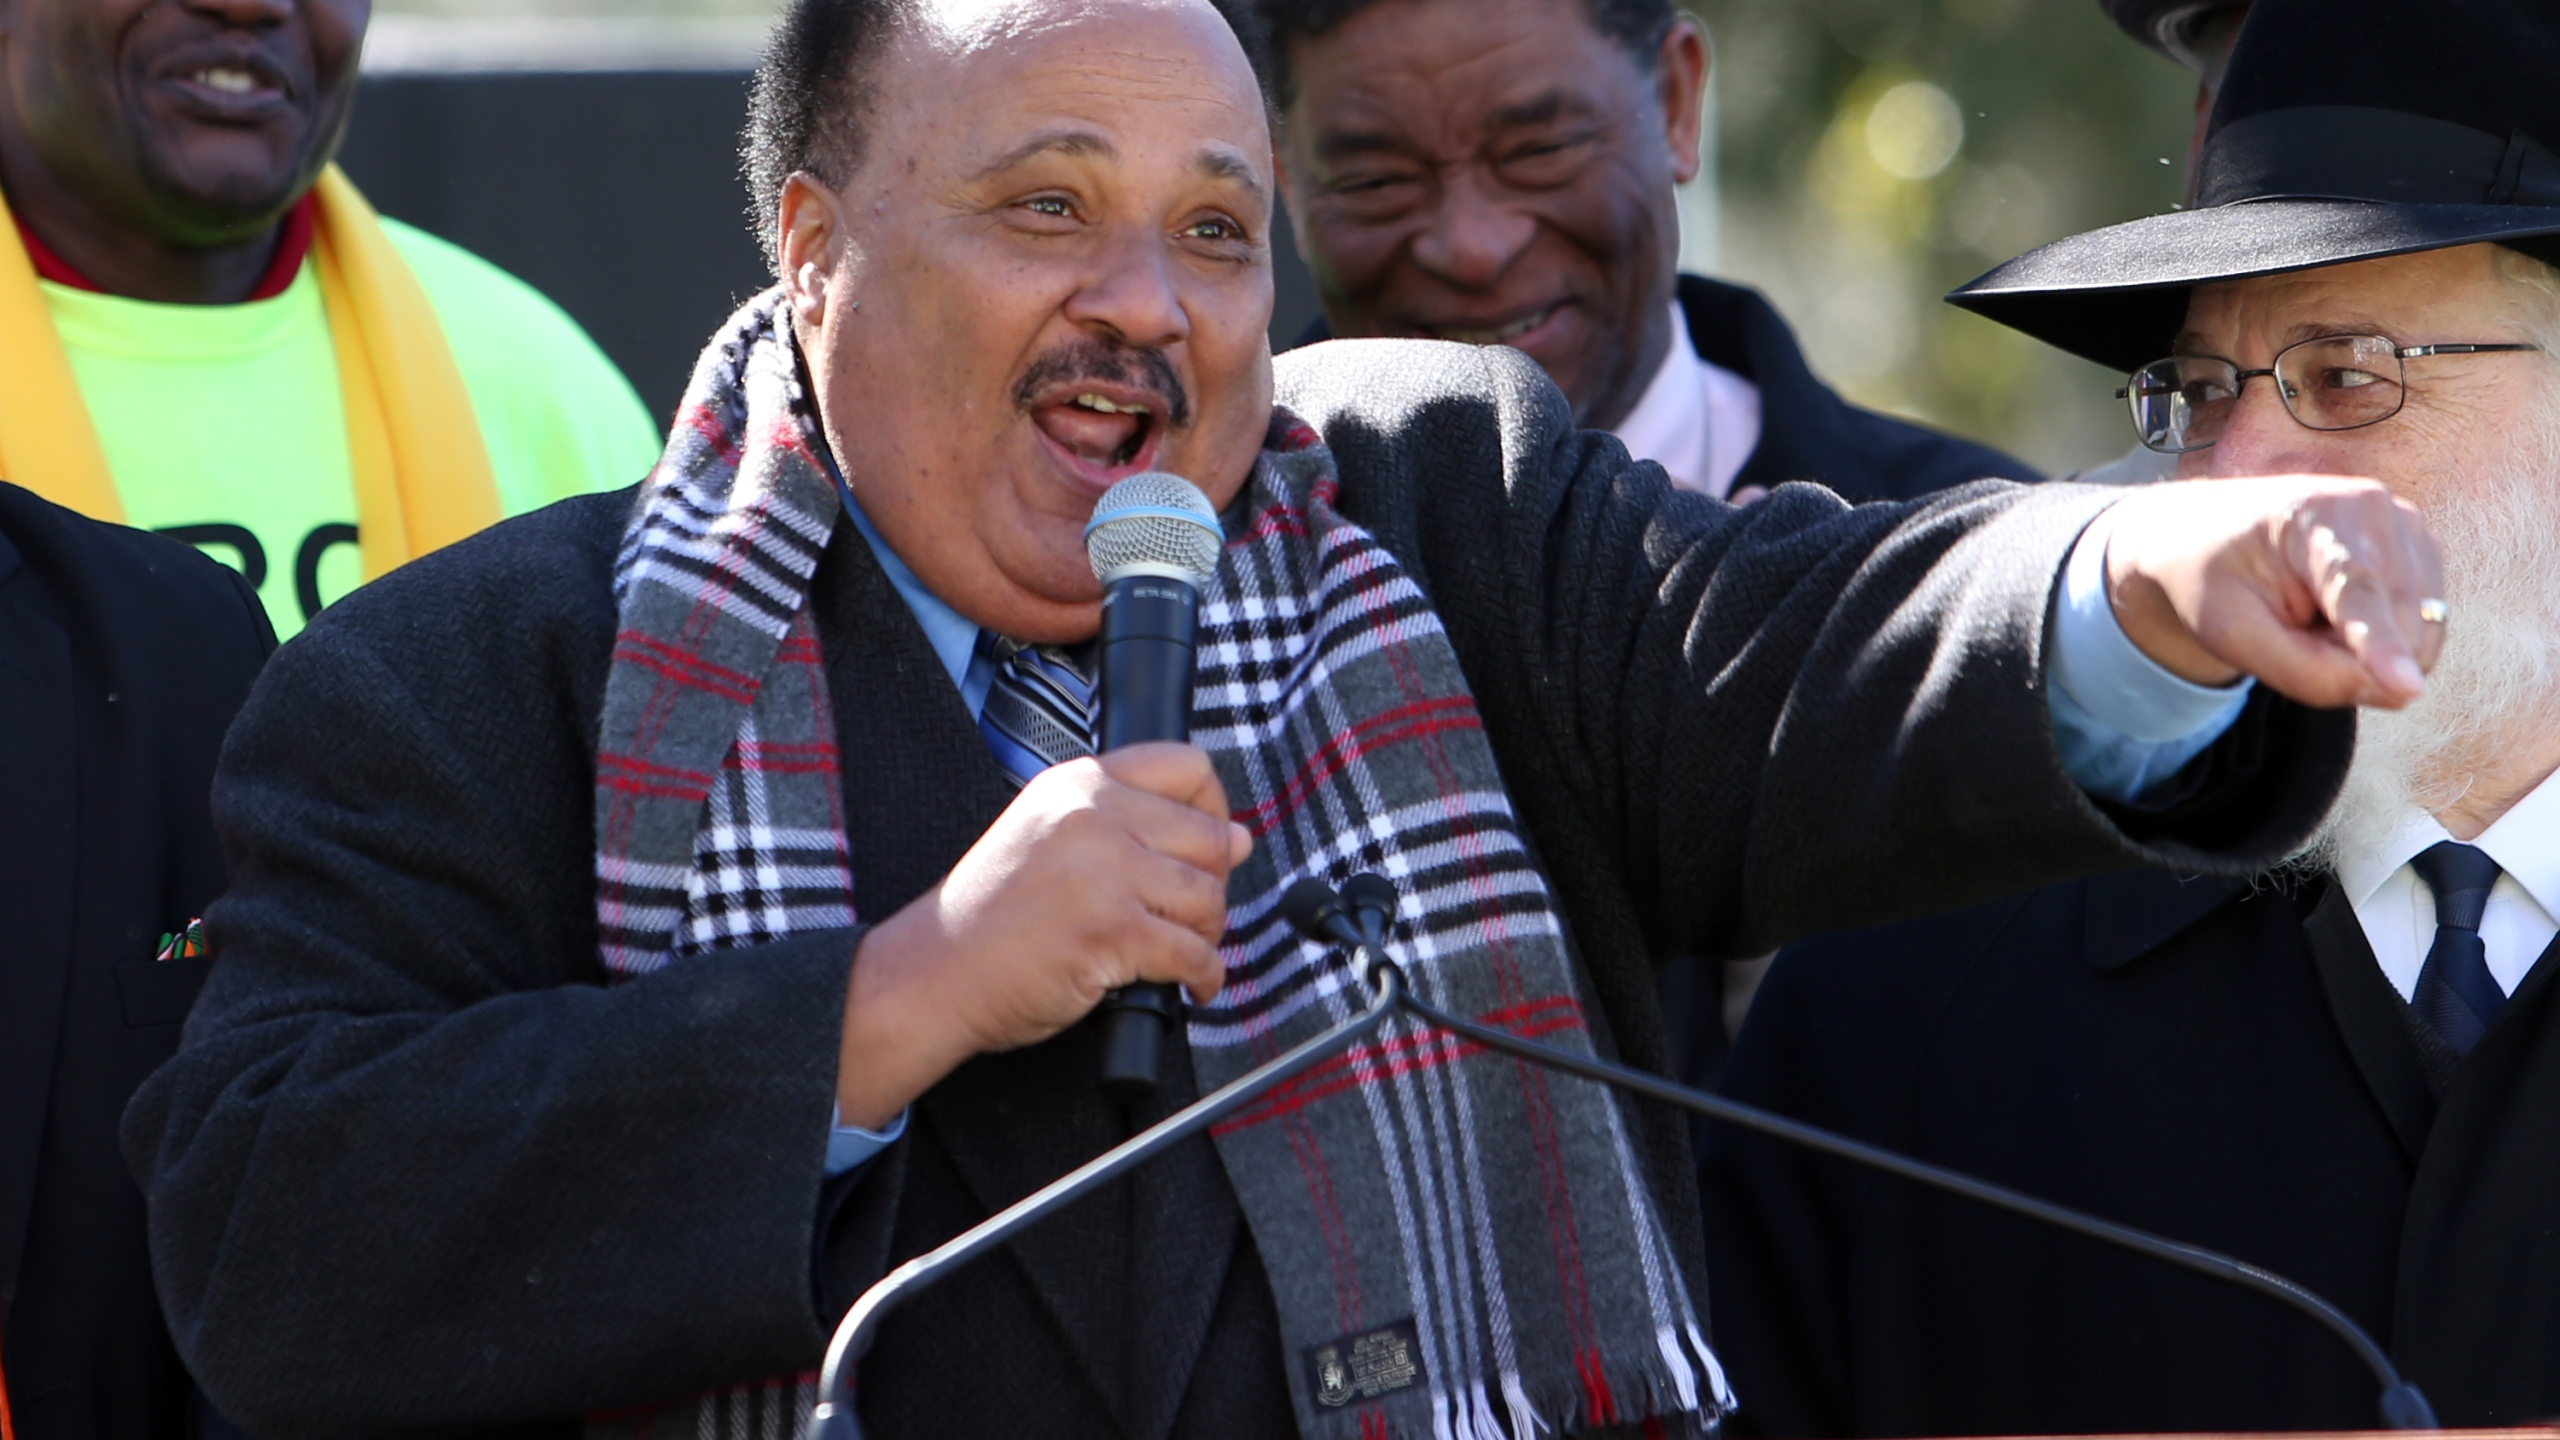 Martin Luther King III Photo by Steve Cannon, AP Photo_266266